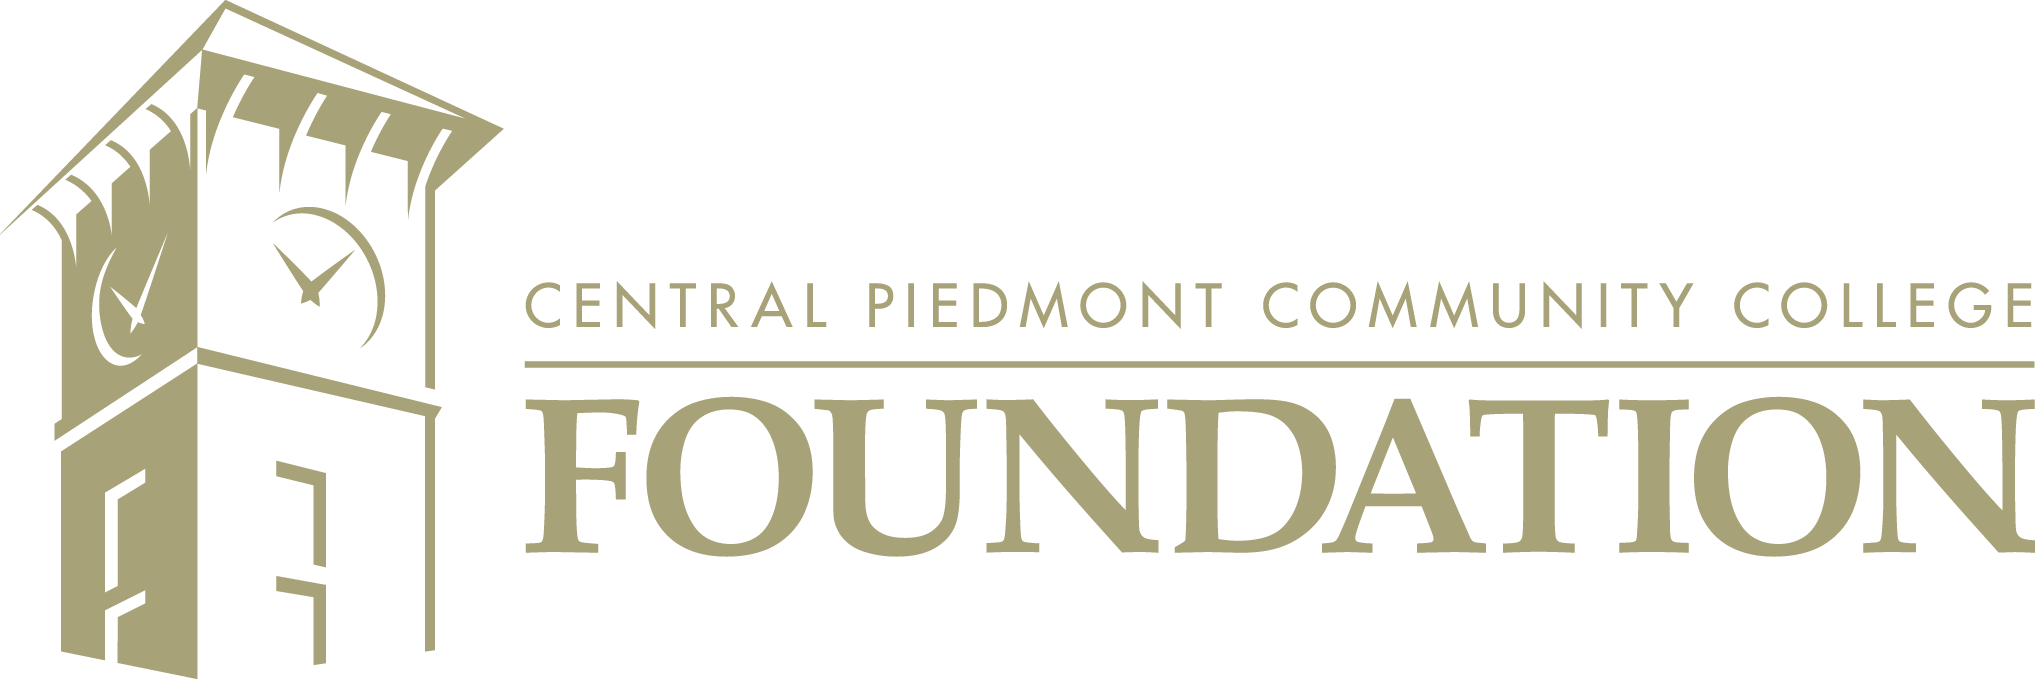 Central Piedmont Community College Foundation